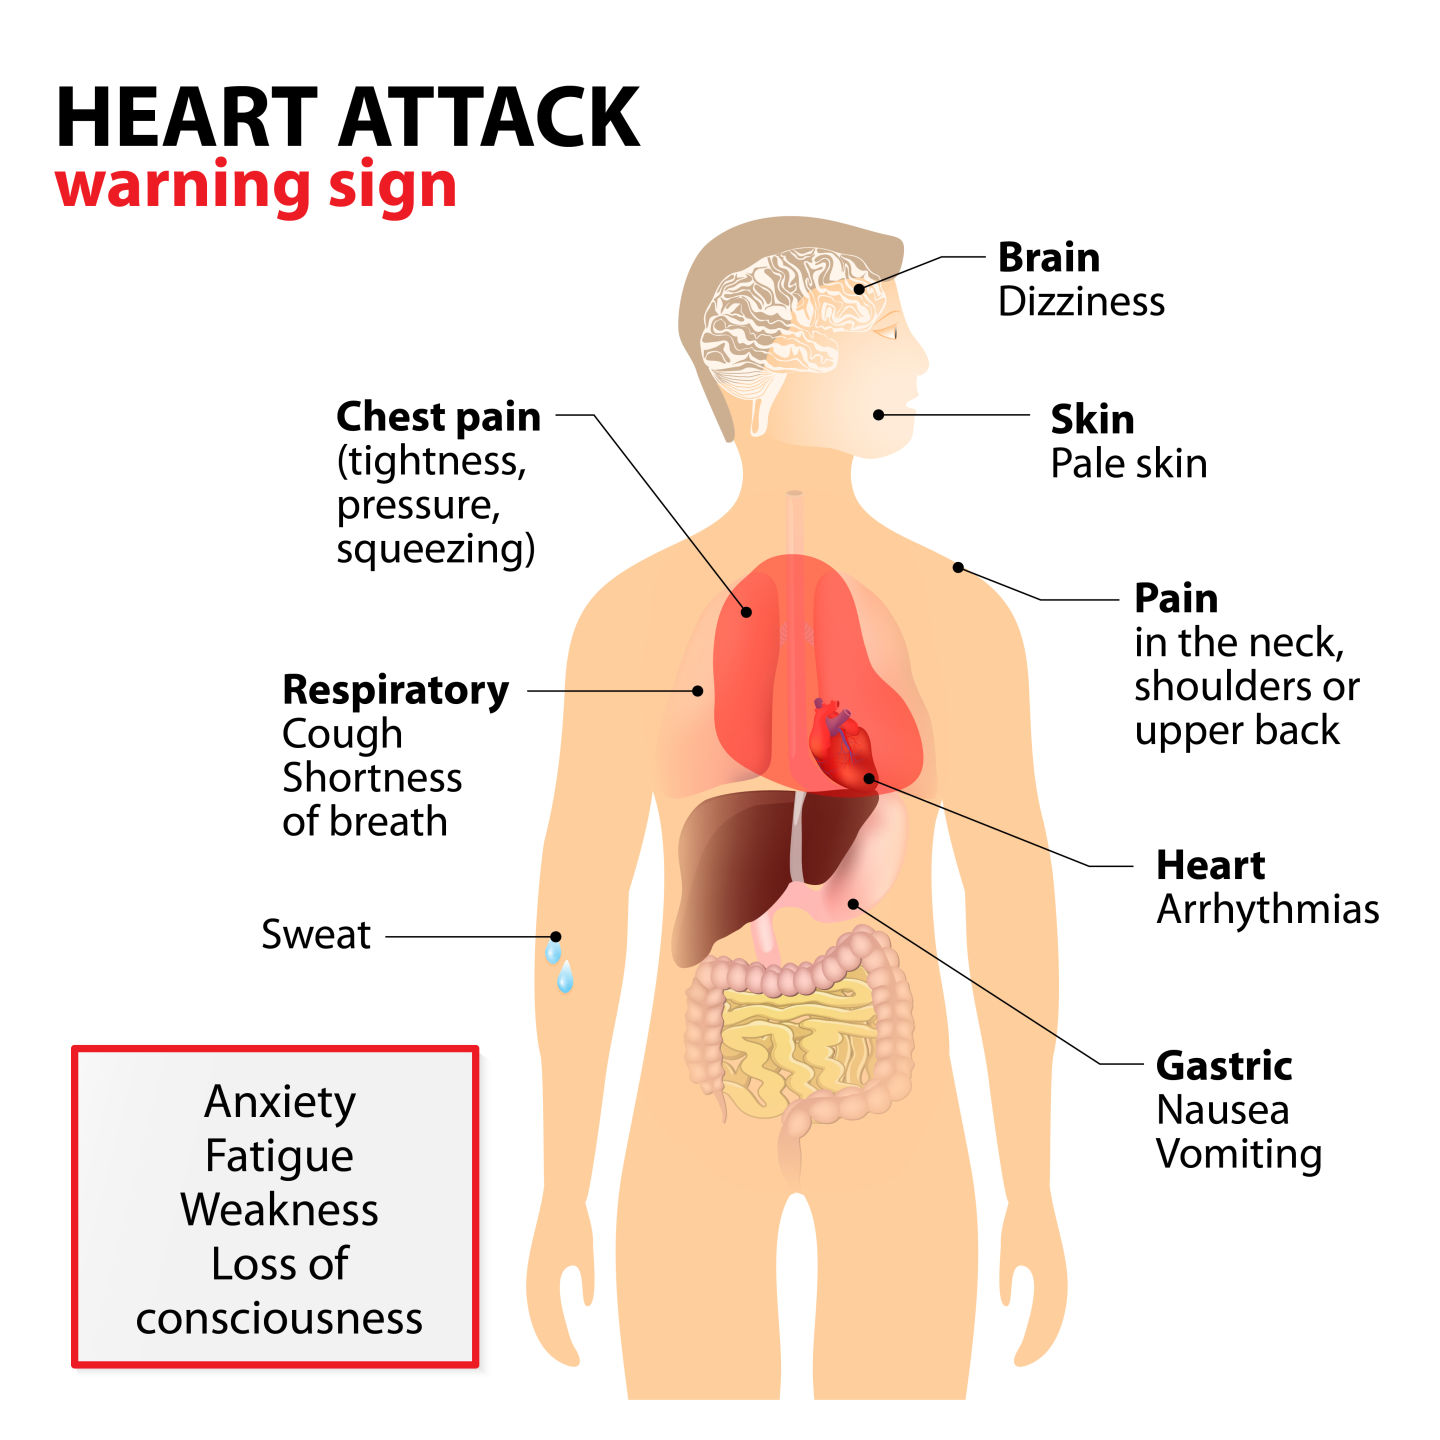 two sides of the same coin stroke and heart disease in both cases Asthma Attack heart attack